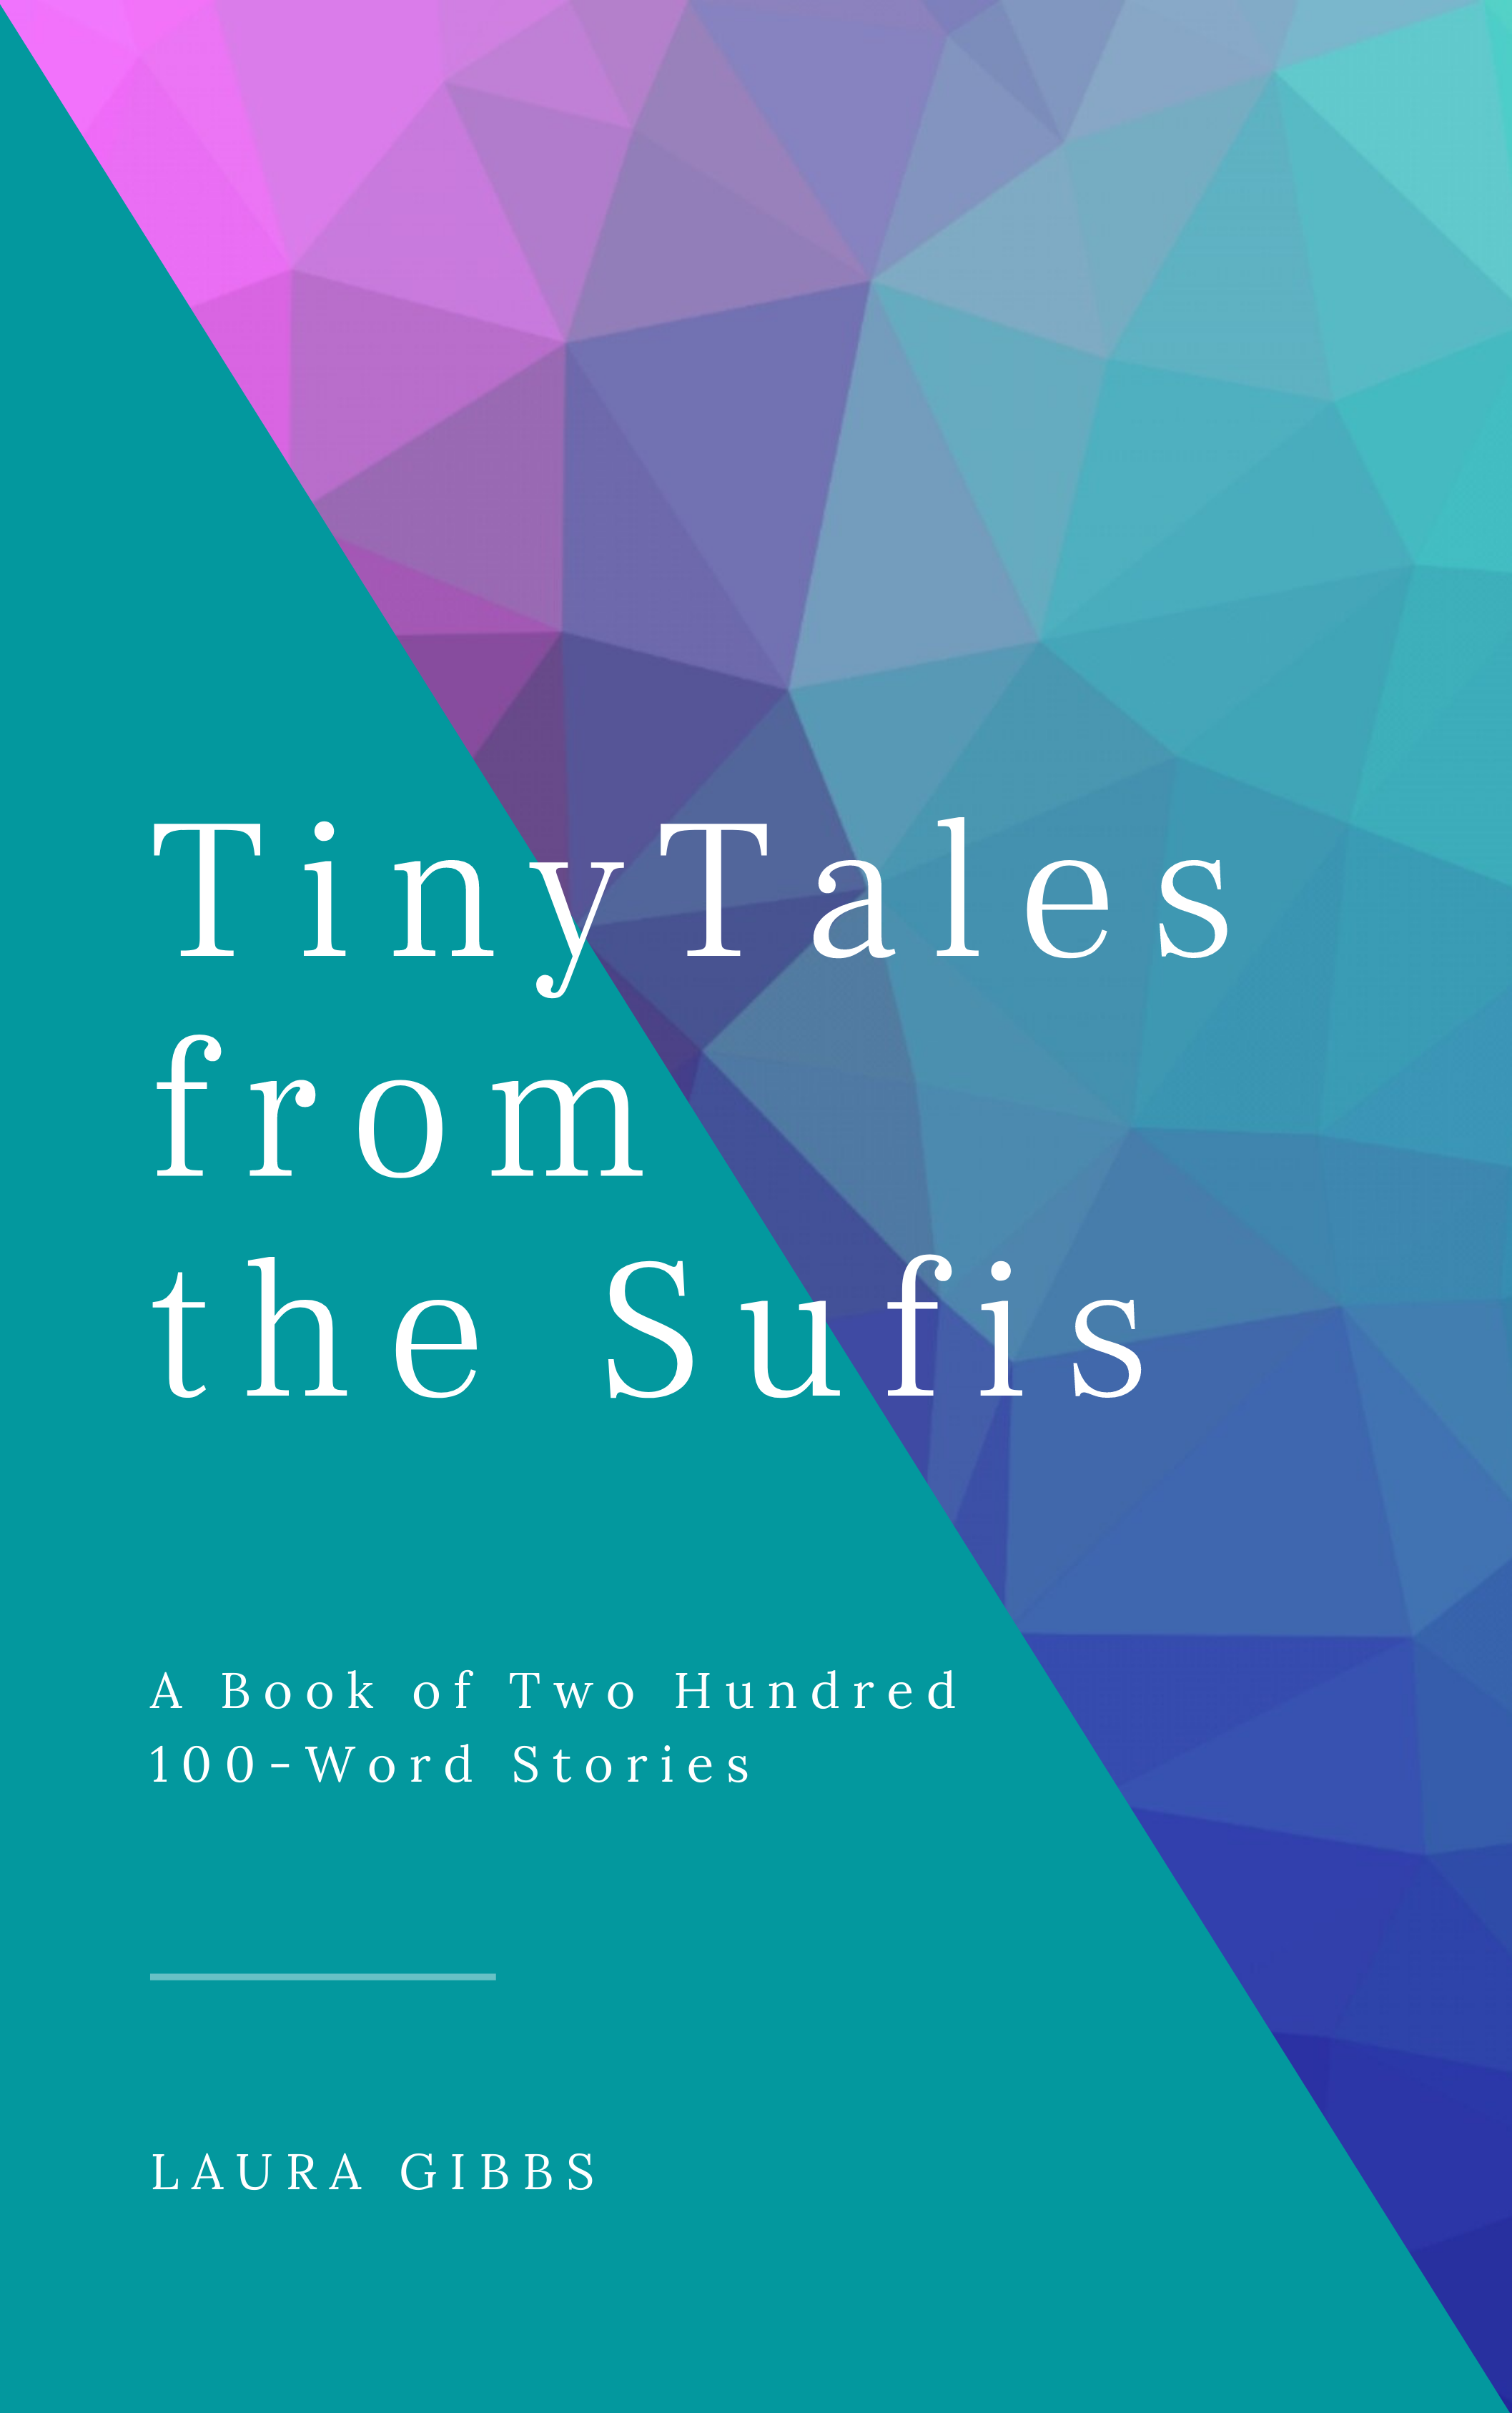 Cover image for Tiny Tales from the Sufis